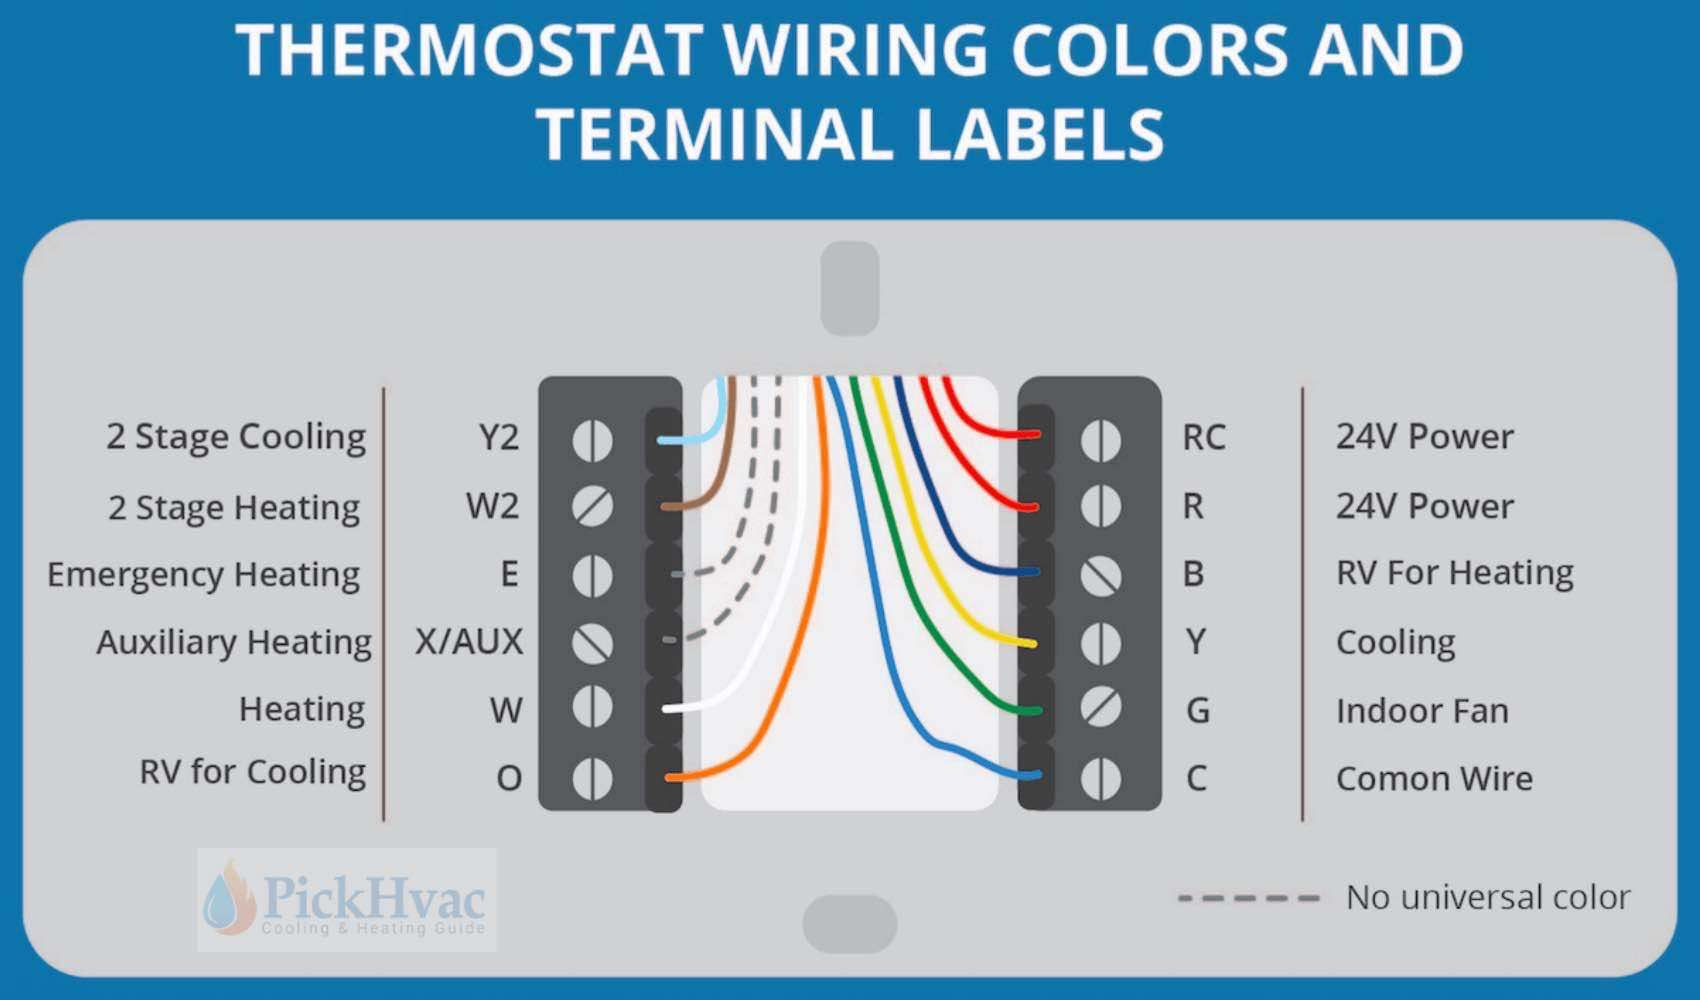 thermostat wiring colors to labels | Thermostat wiring, Hvac thermostat,  Heating thermostat | Hvac T Stat Wiring |  | Pinterest